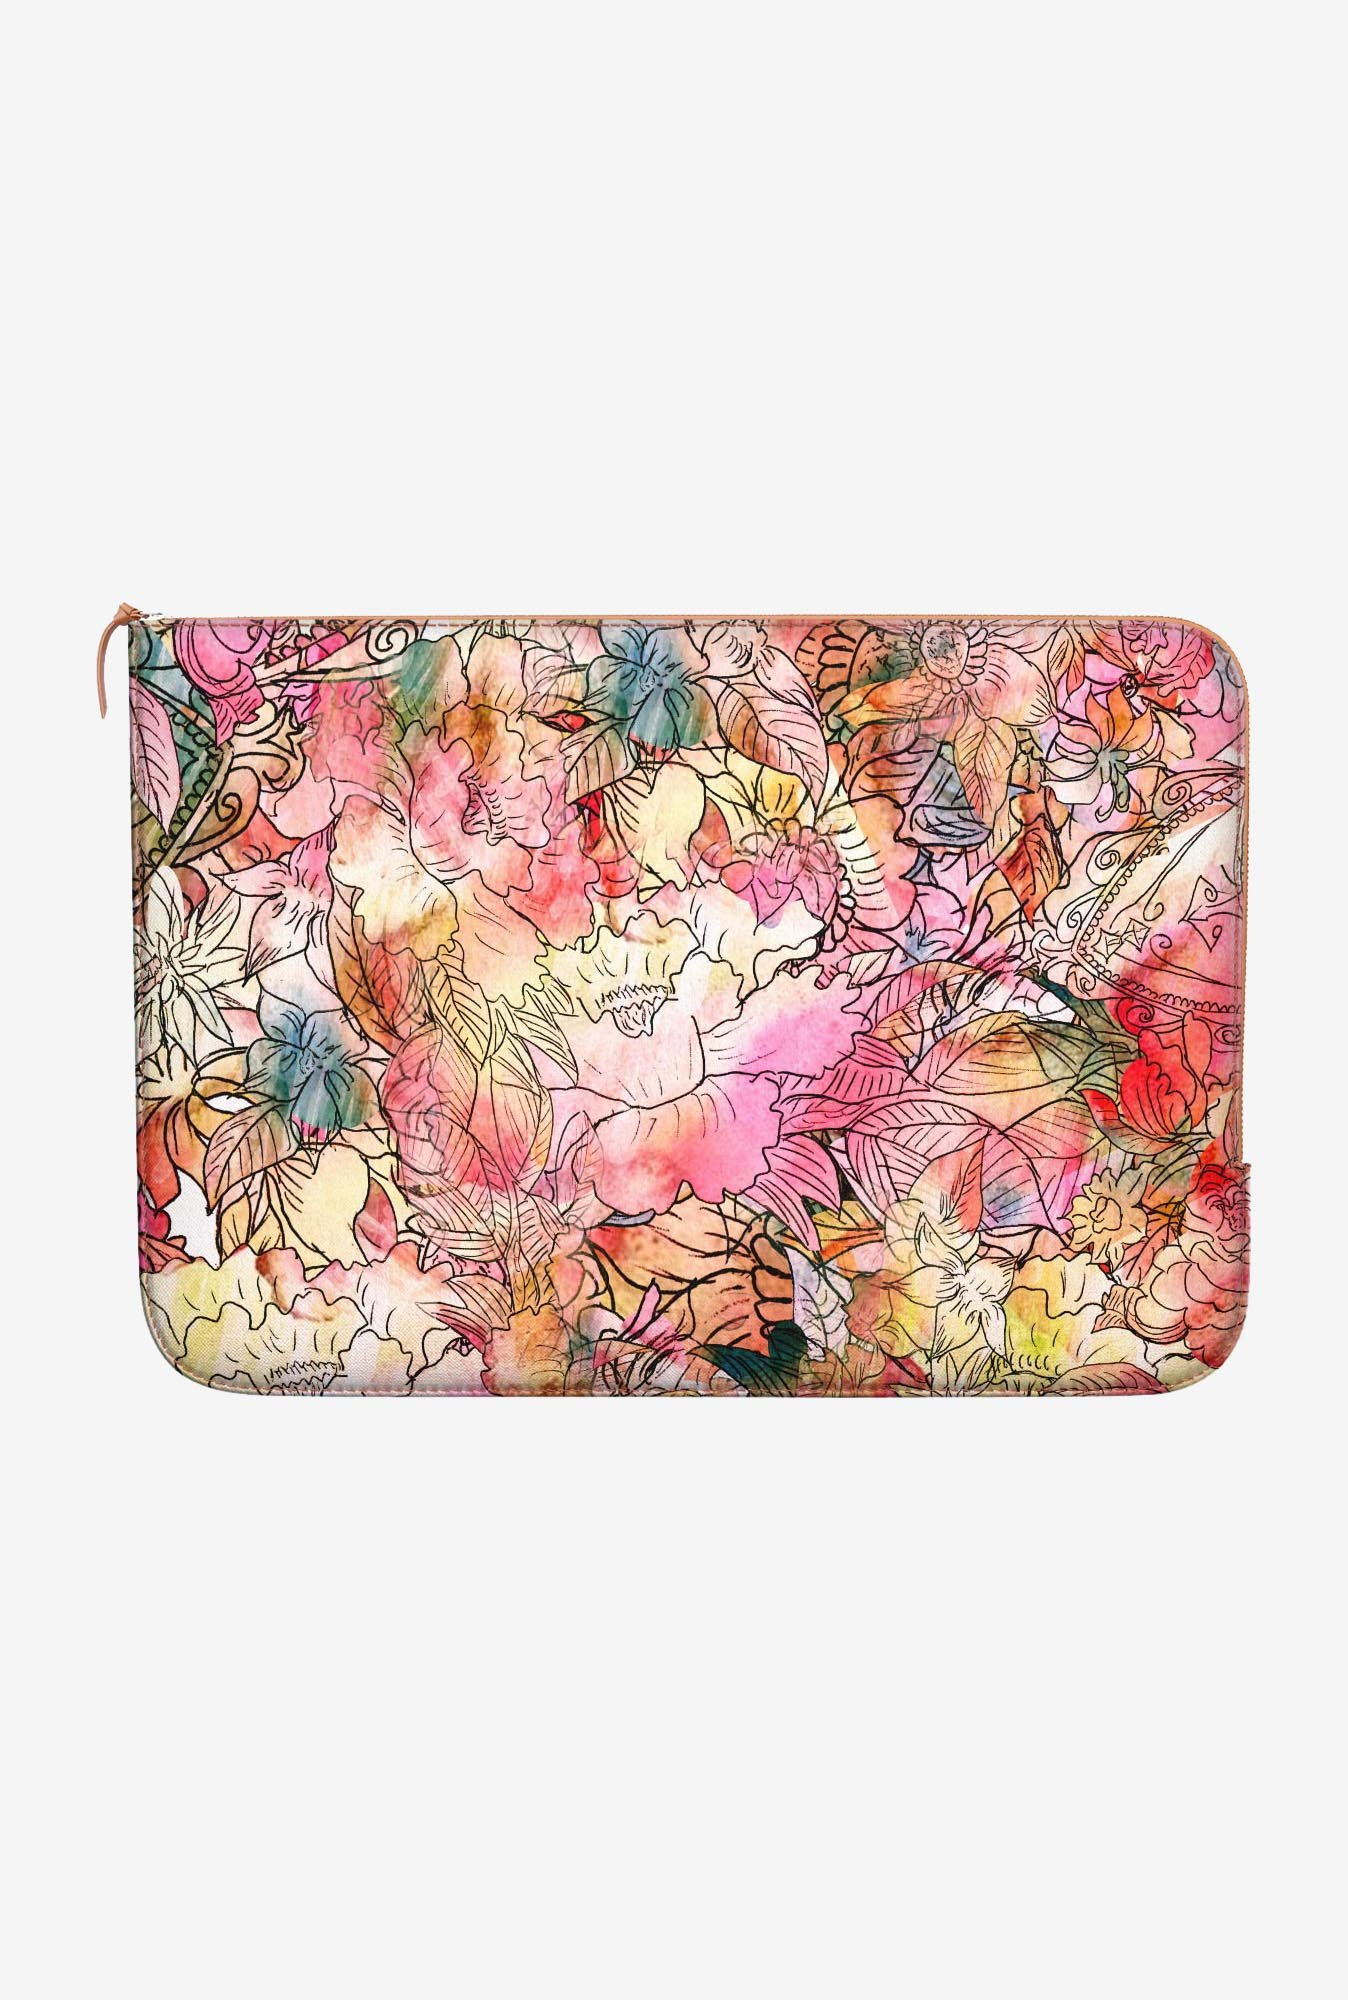 DailyObjects Colorful Floral MacBook 12 Zippered Sleeve